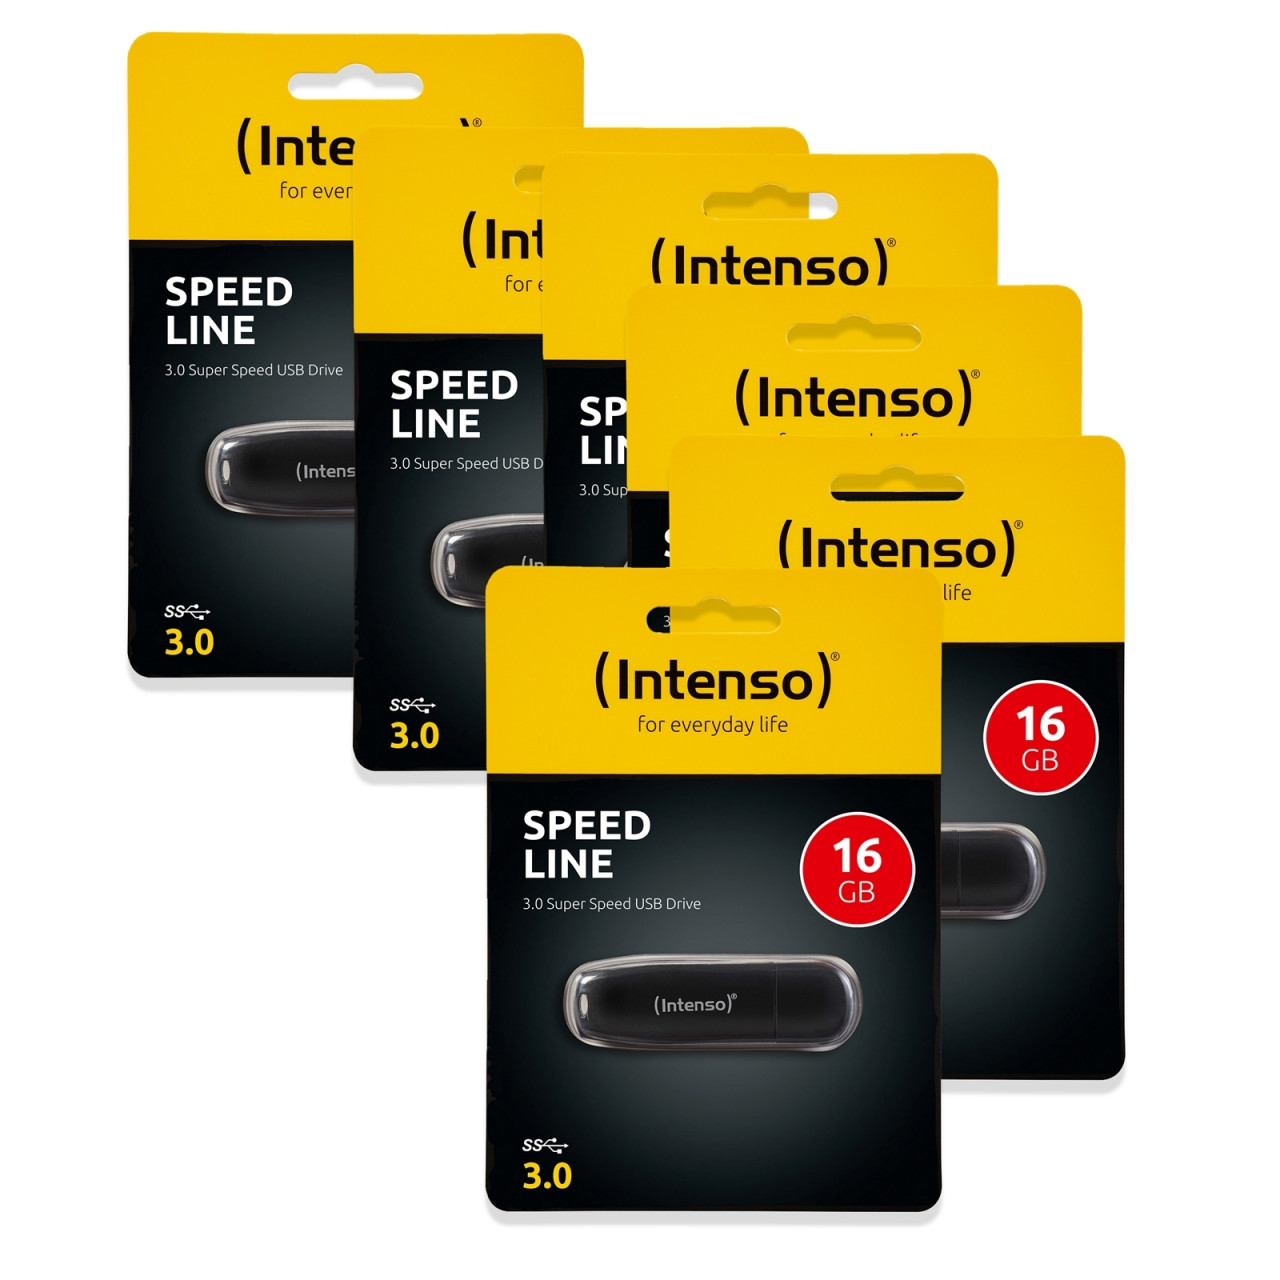 Intenso USB Stick 16 GB 6er Set